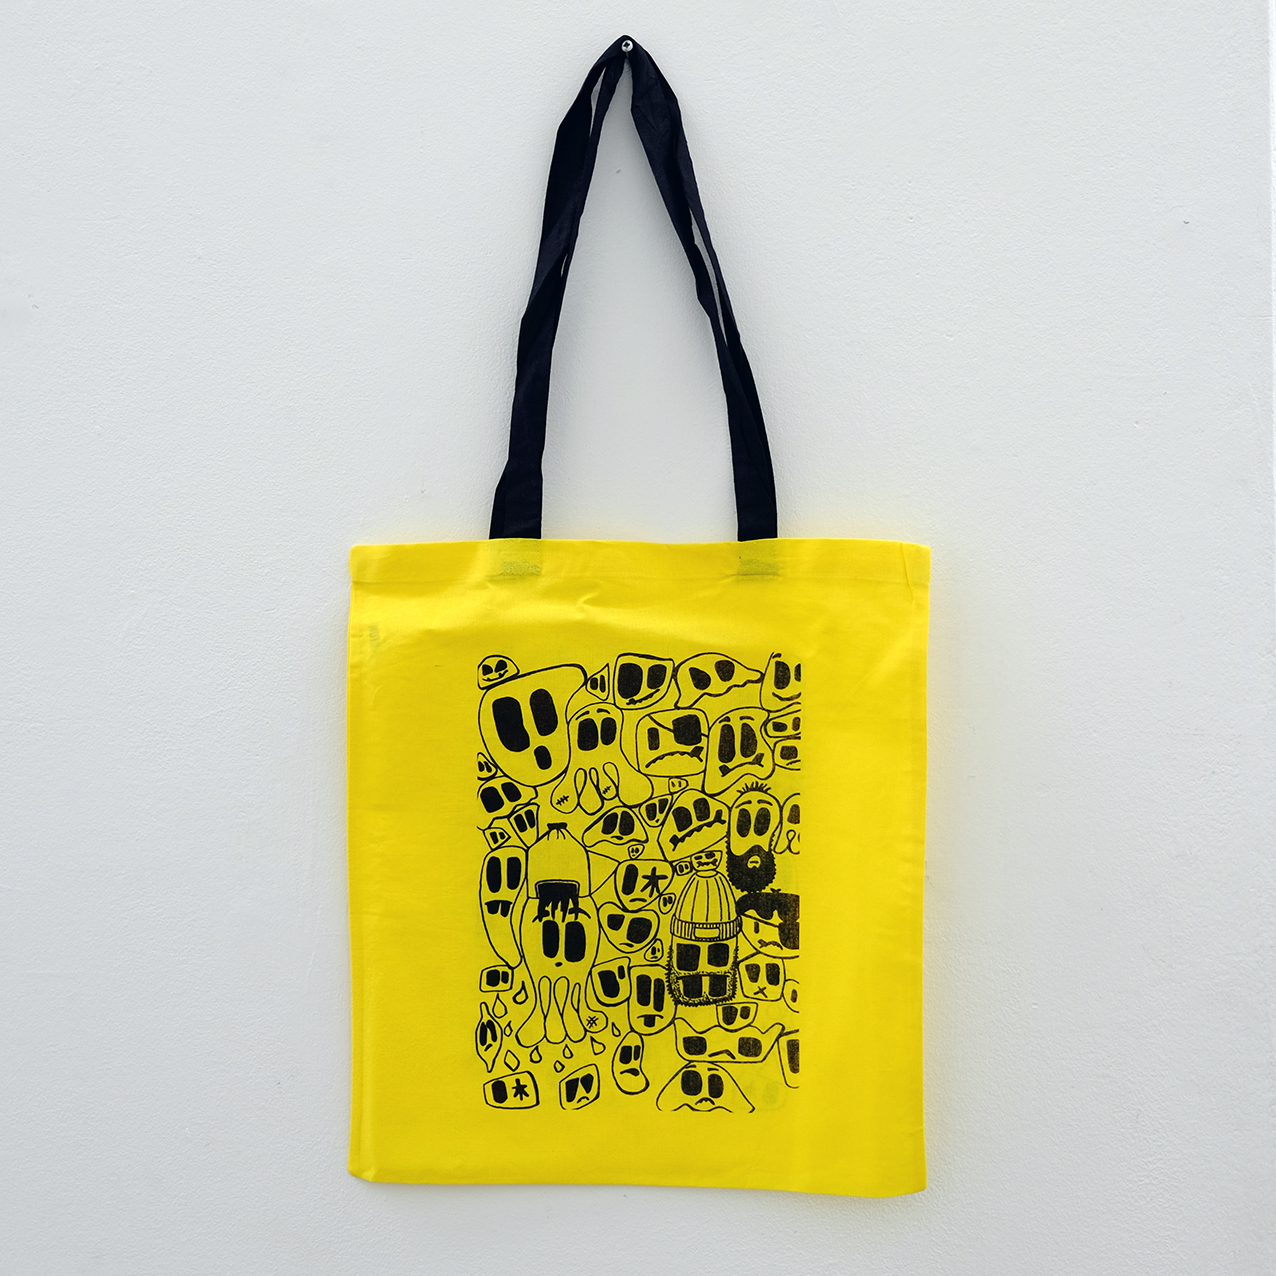 'Monster Fam' Tote by Andrew Kiwanuka